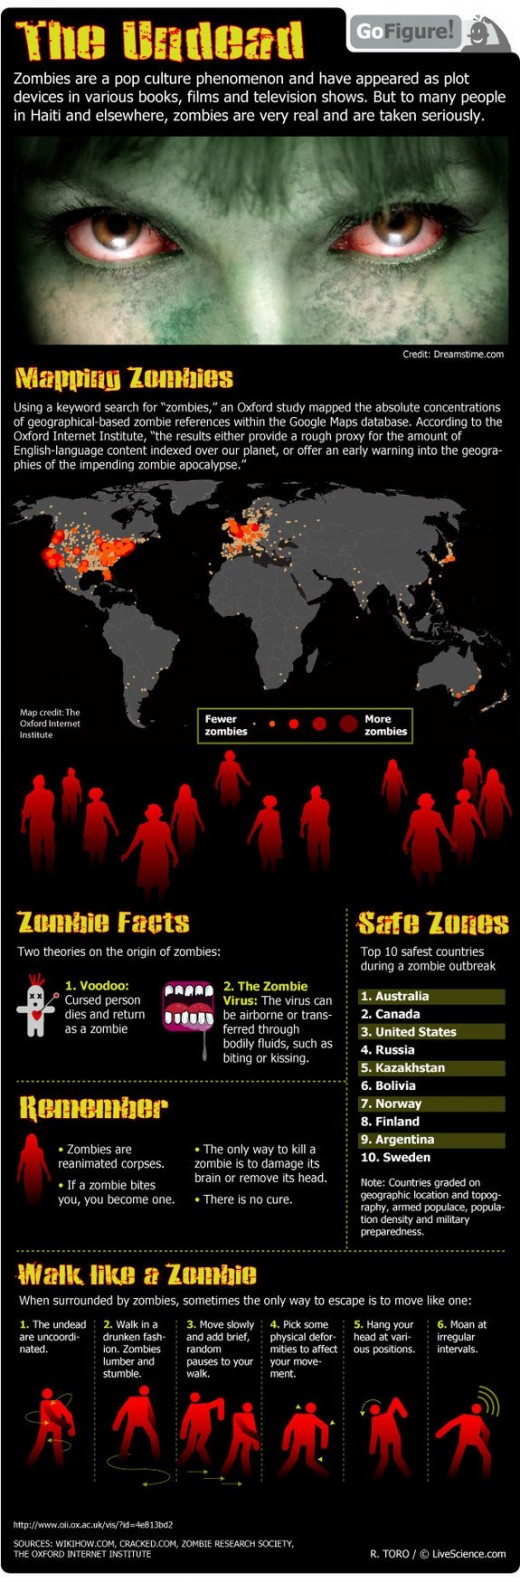 Zombie Facts: Real and Imagined